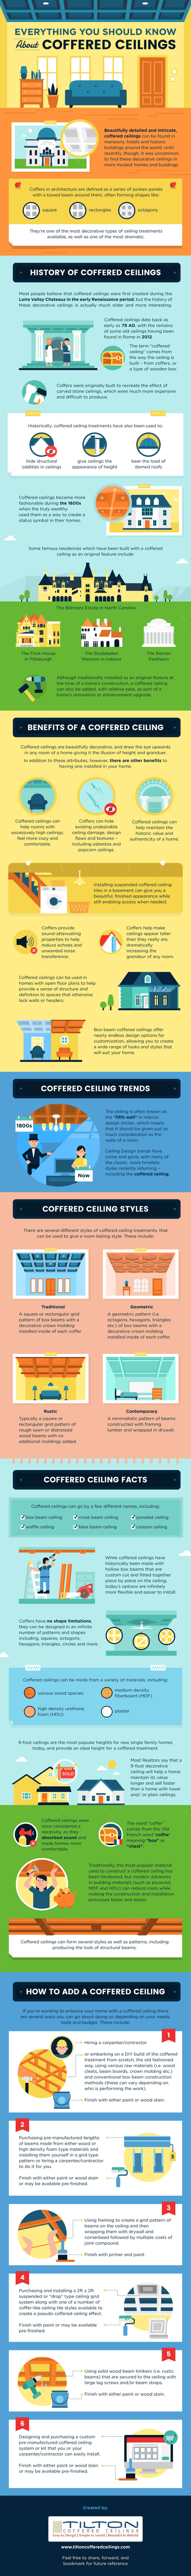 Dress Up Your Home Interior With Coffered Ceilings Interior